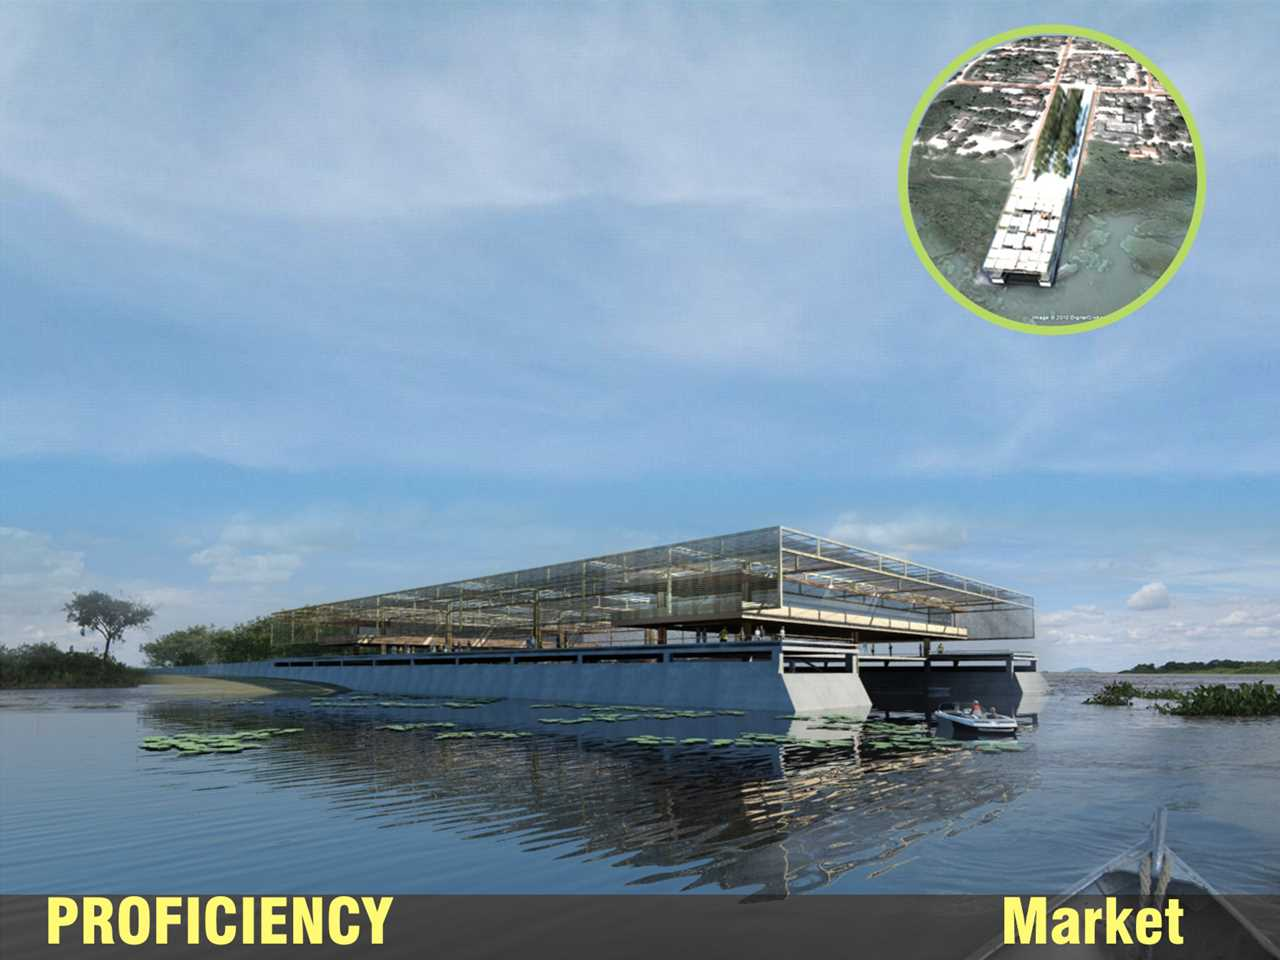 Project entry 2011 - Reinvigorated waterways for transportation and sustainable development, …